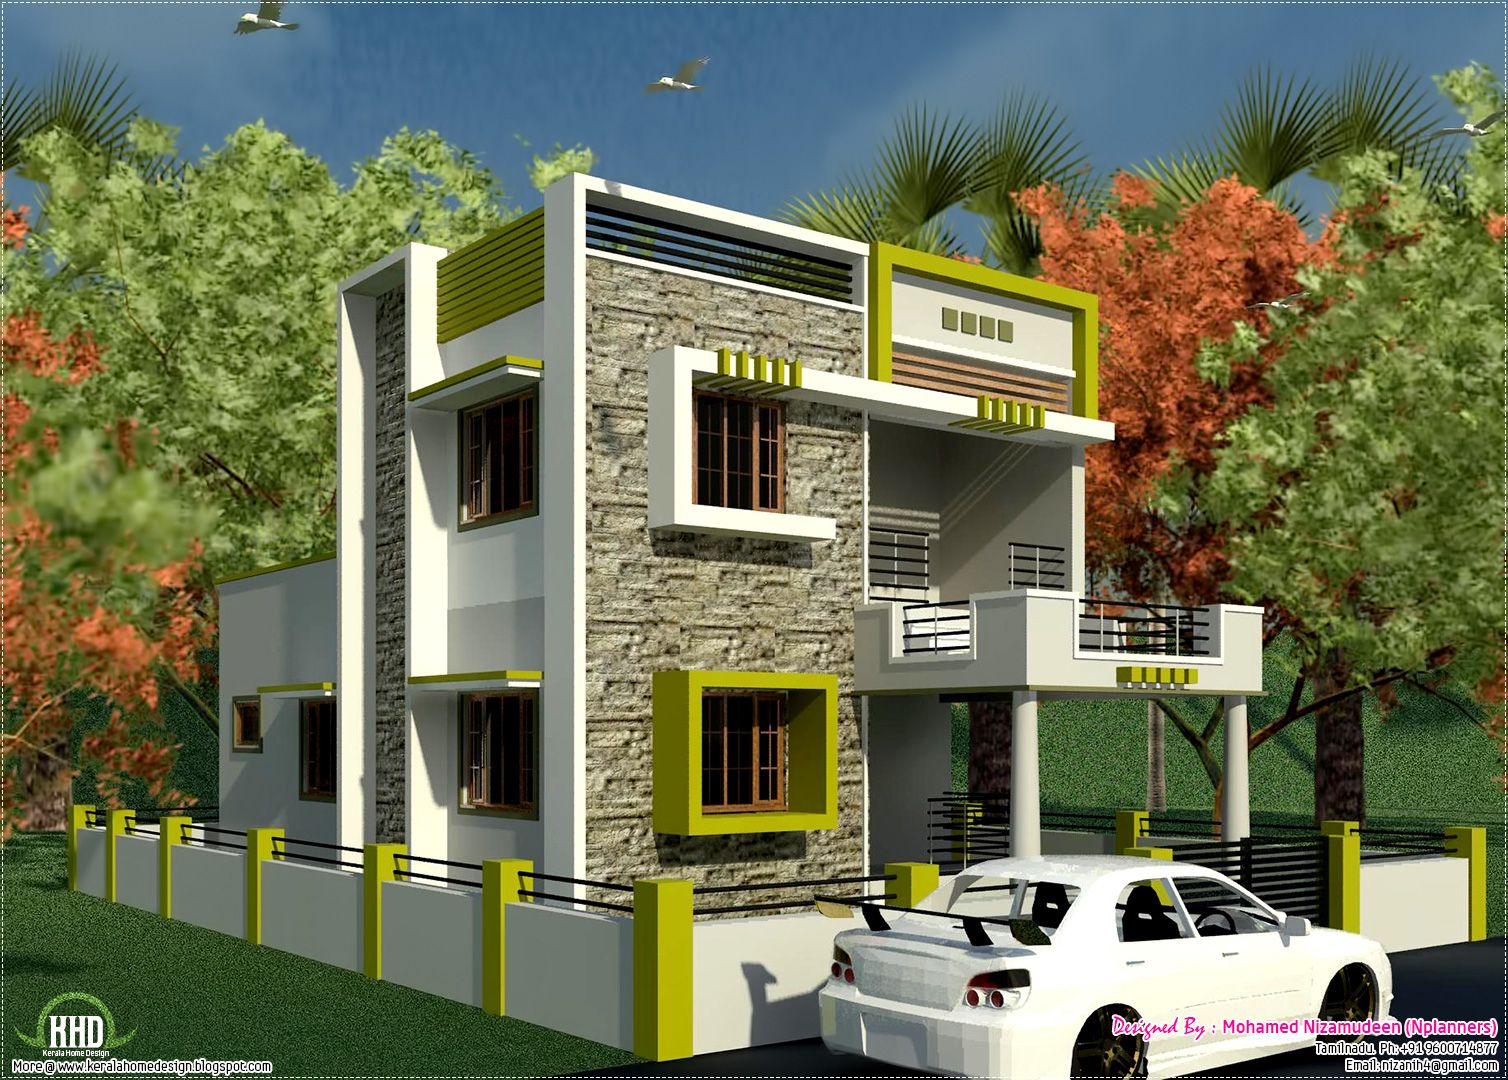 Small house with car park design tobfav com ideas for for House structure design in india